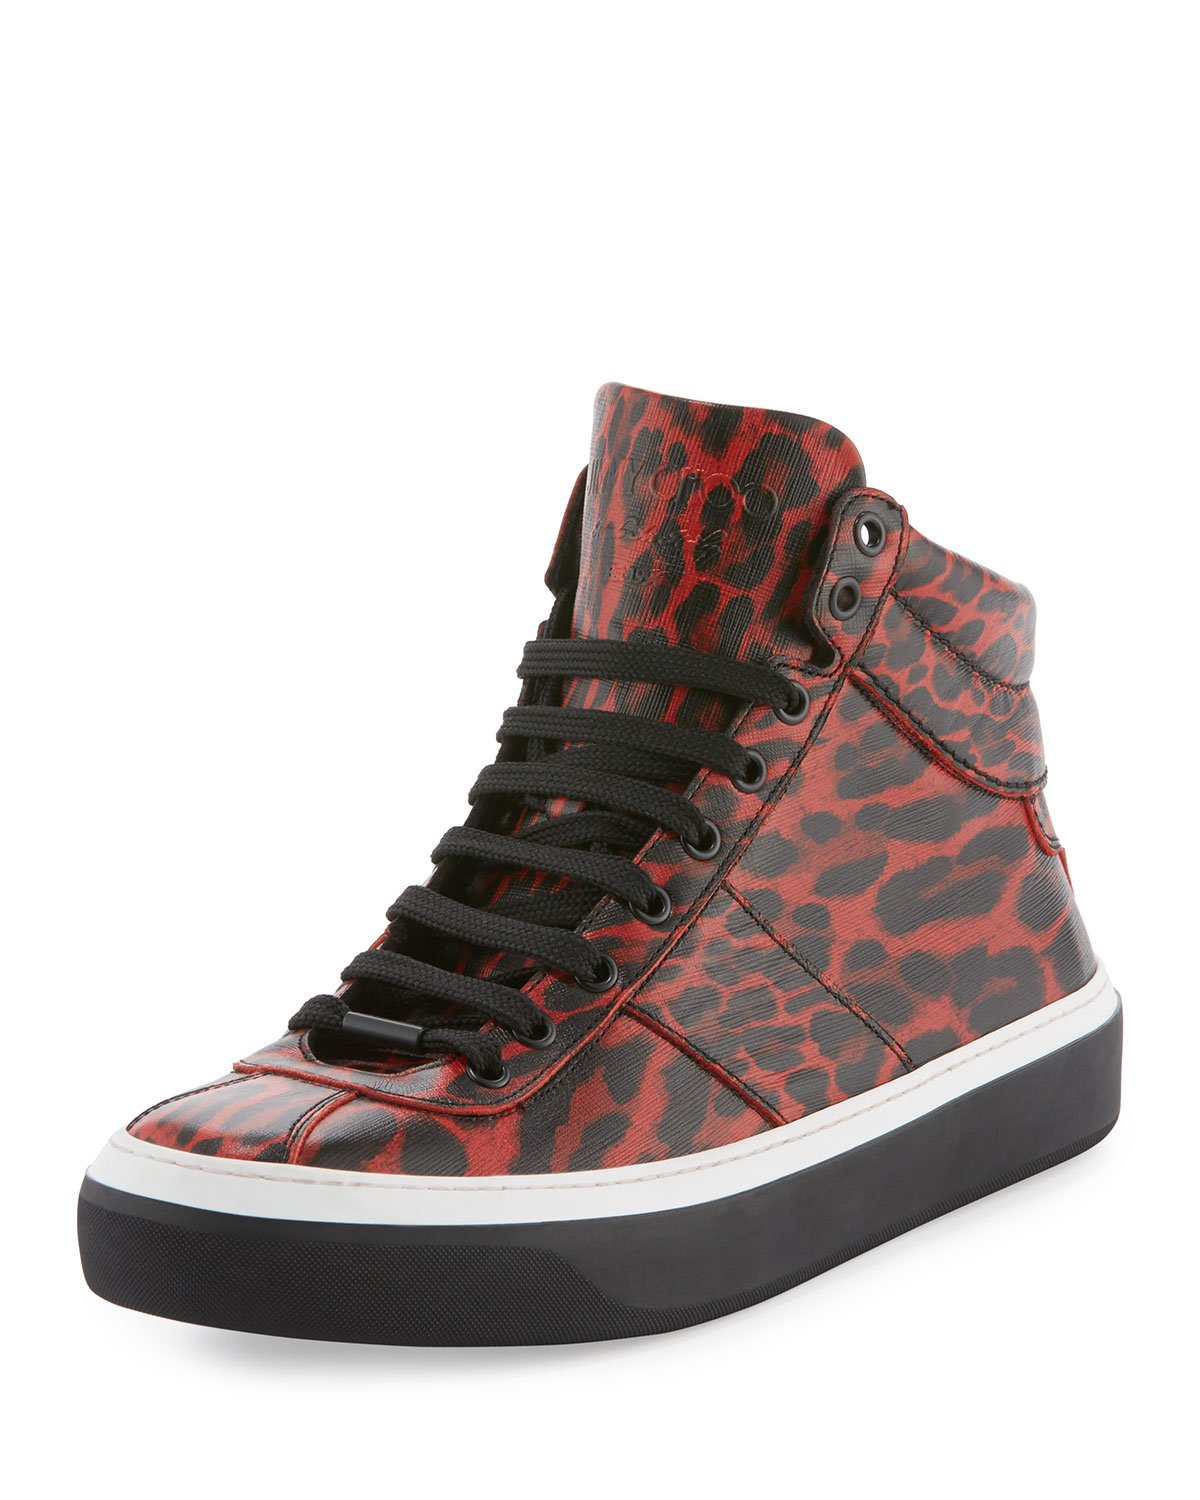 jimmy choo belgravia leopard print leather high top sneaker in red for men save 21 lyst. Black Bedroom Furniture Sets. Home Design Ideas